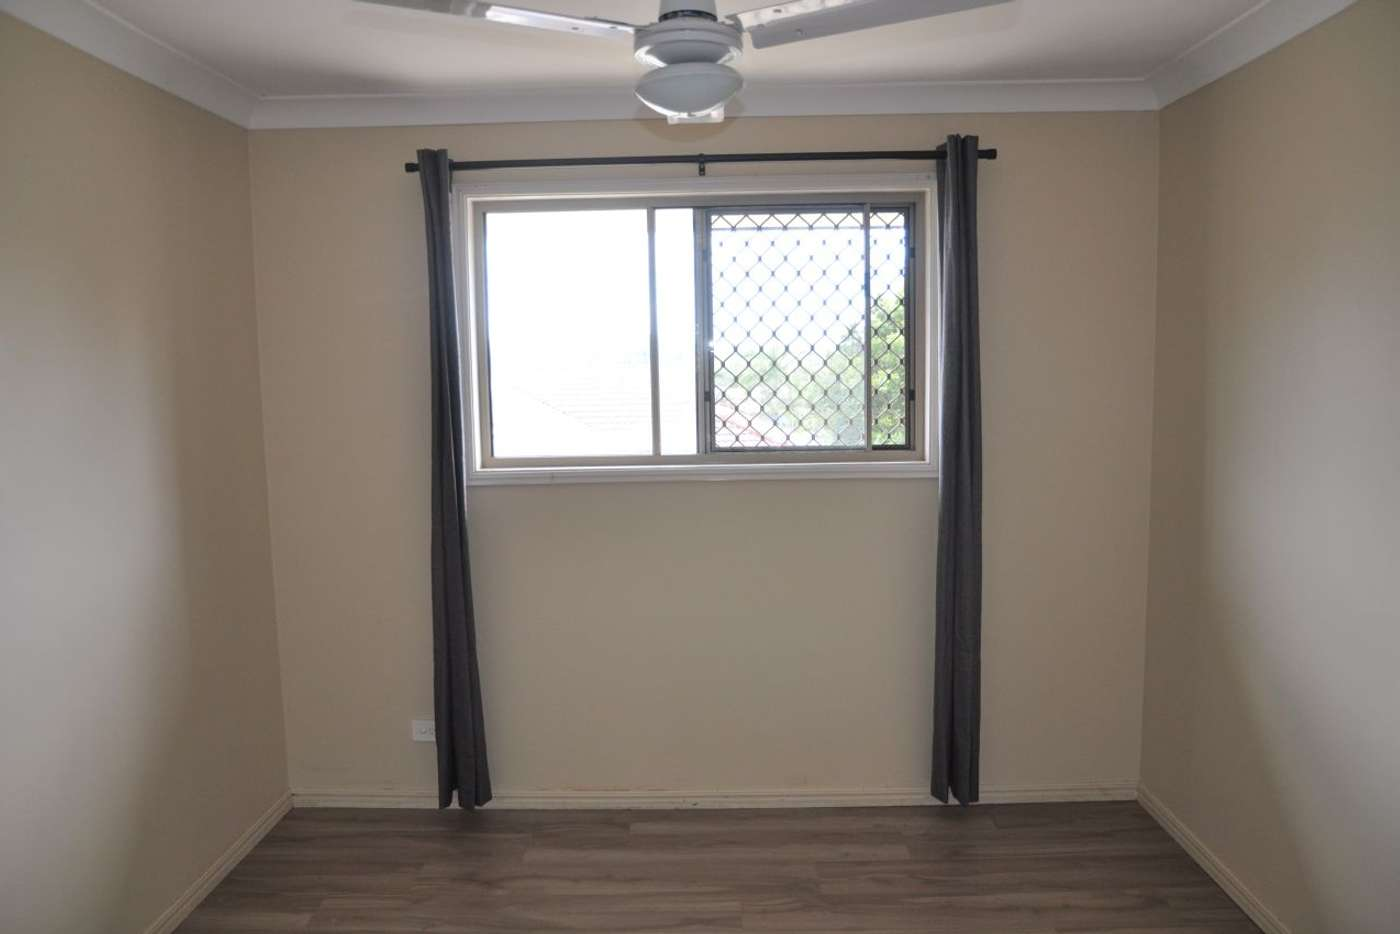 Sixth view of Homely townhouse listing, 153/3 Bass Street, Woodridge QLD 4114